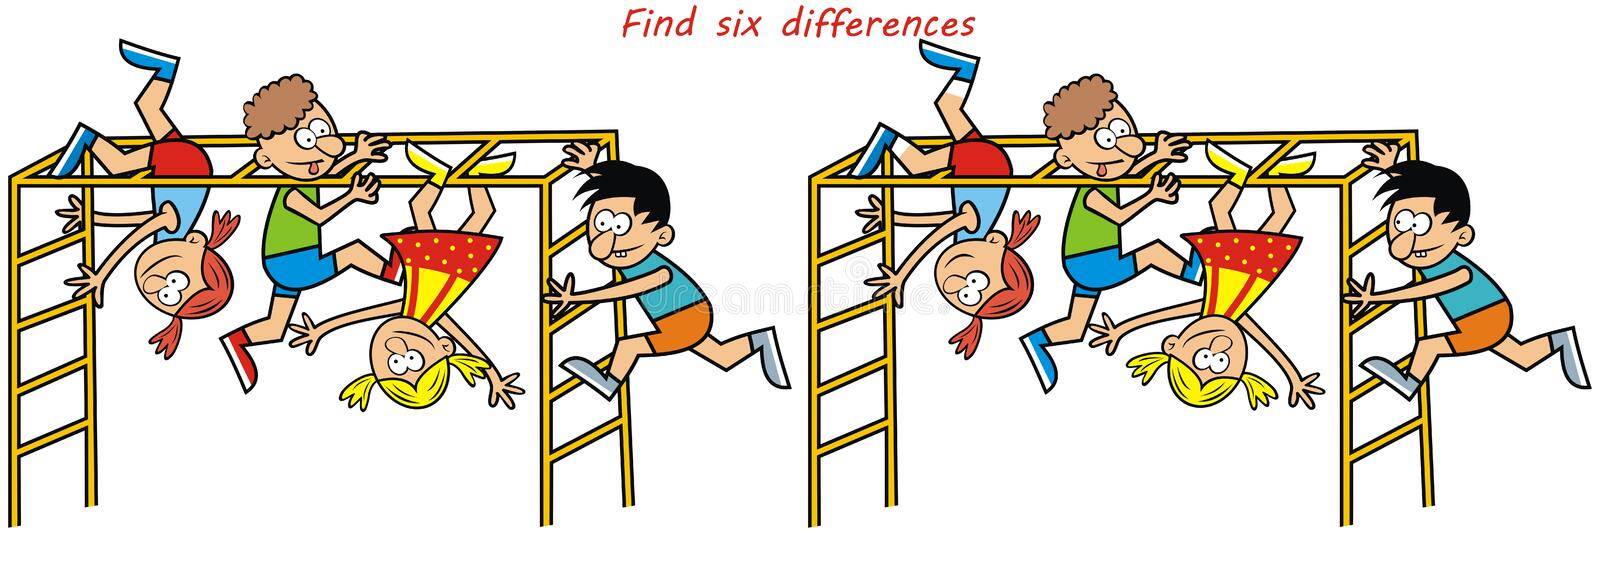 Monkey gym, game, find six differences vector illustration